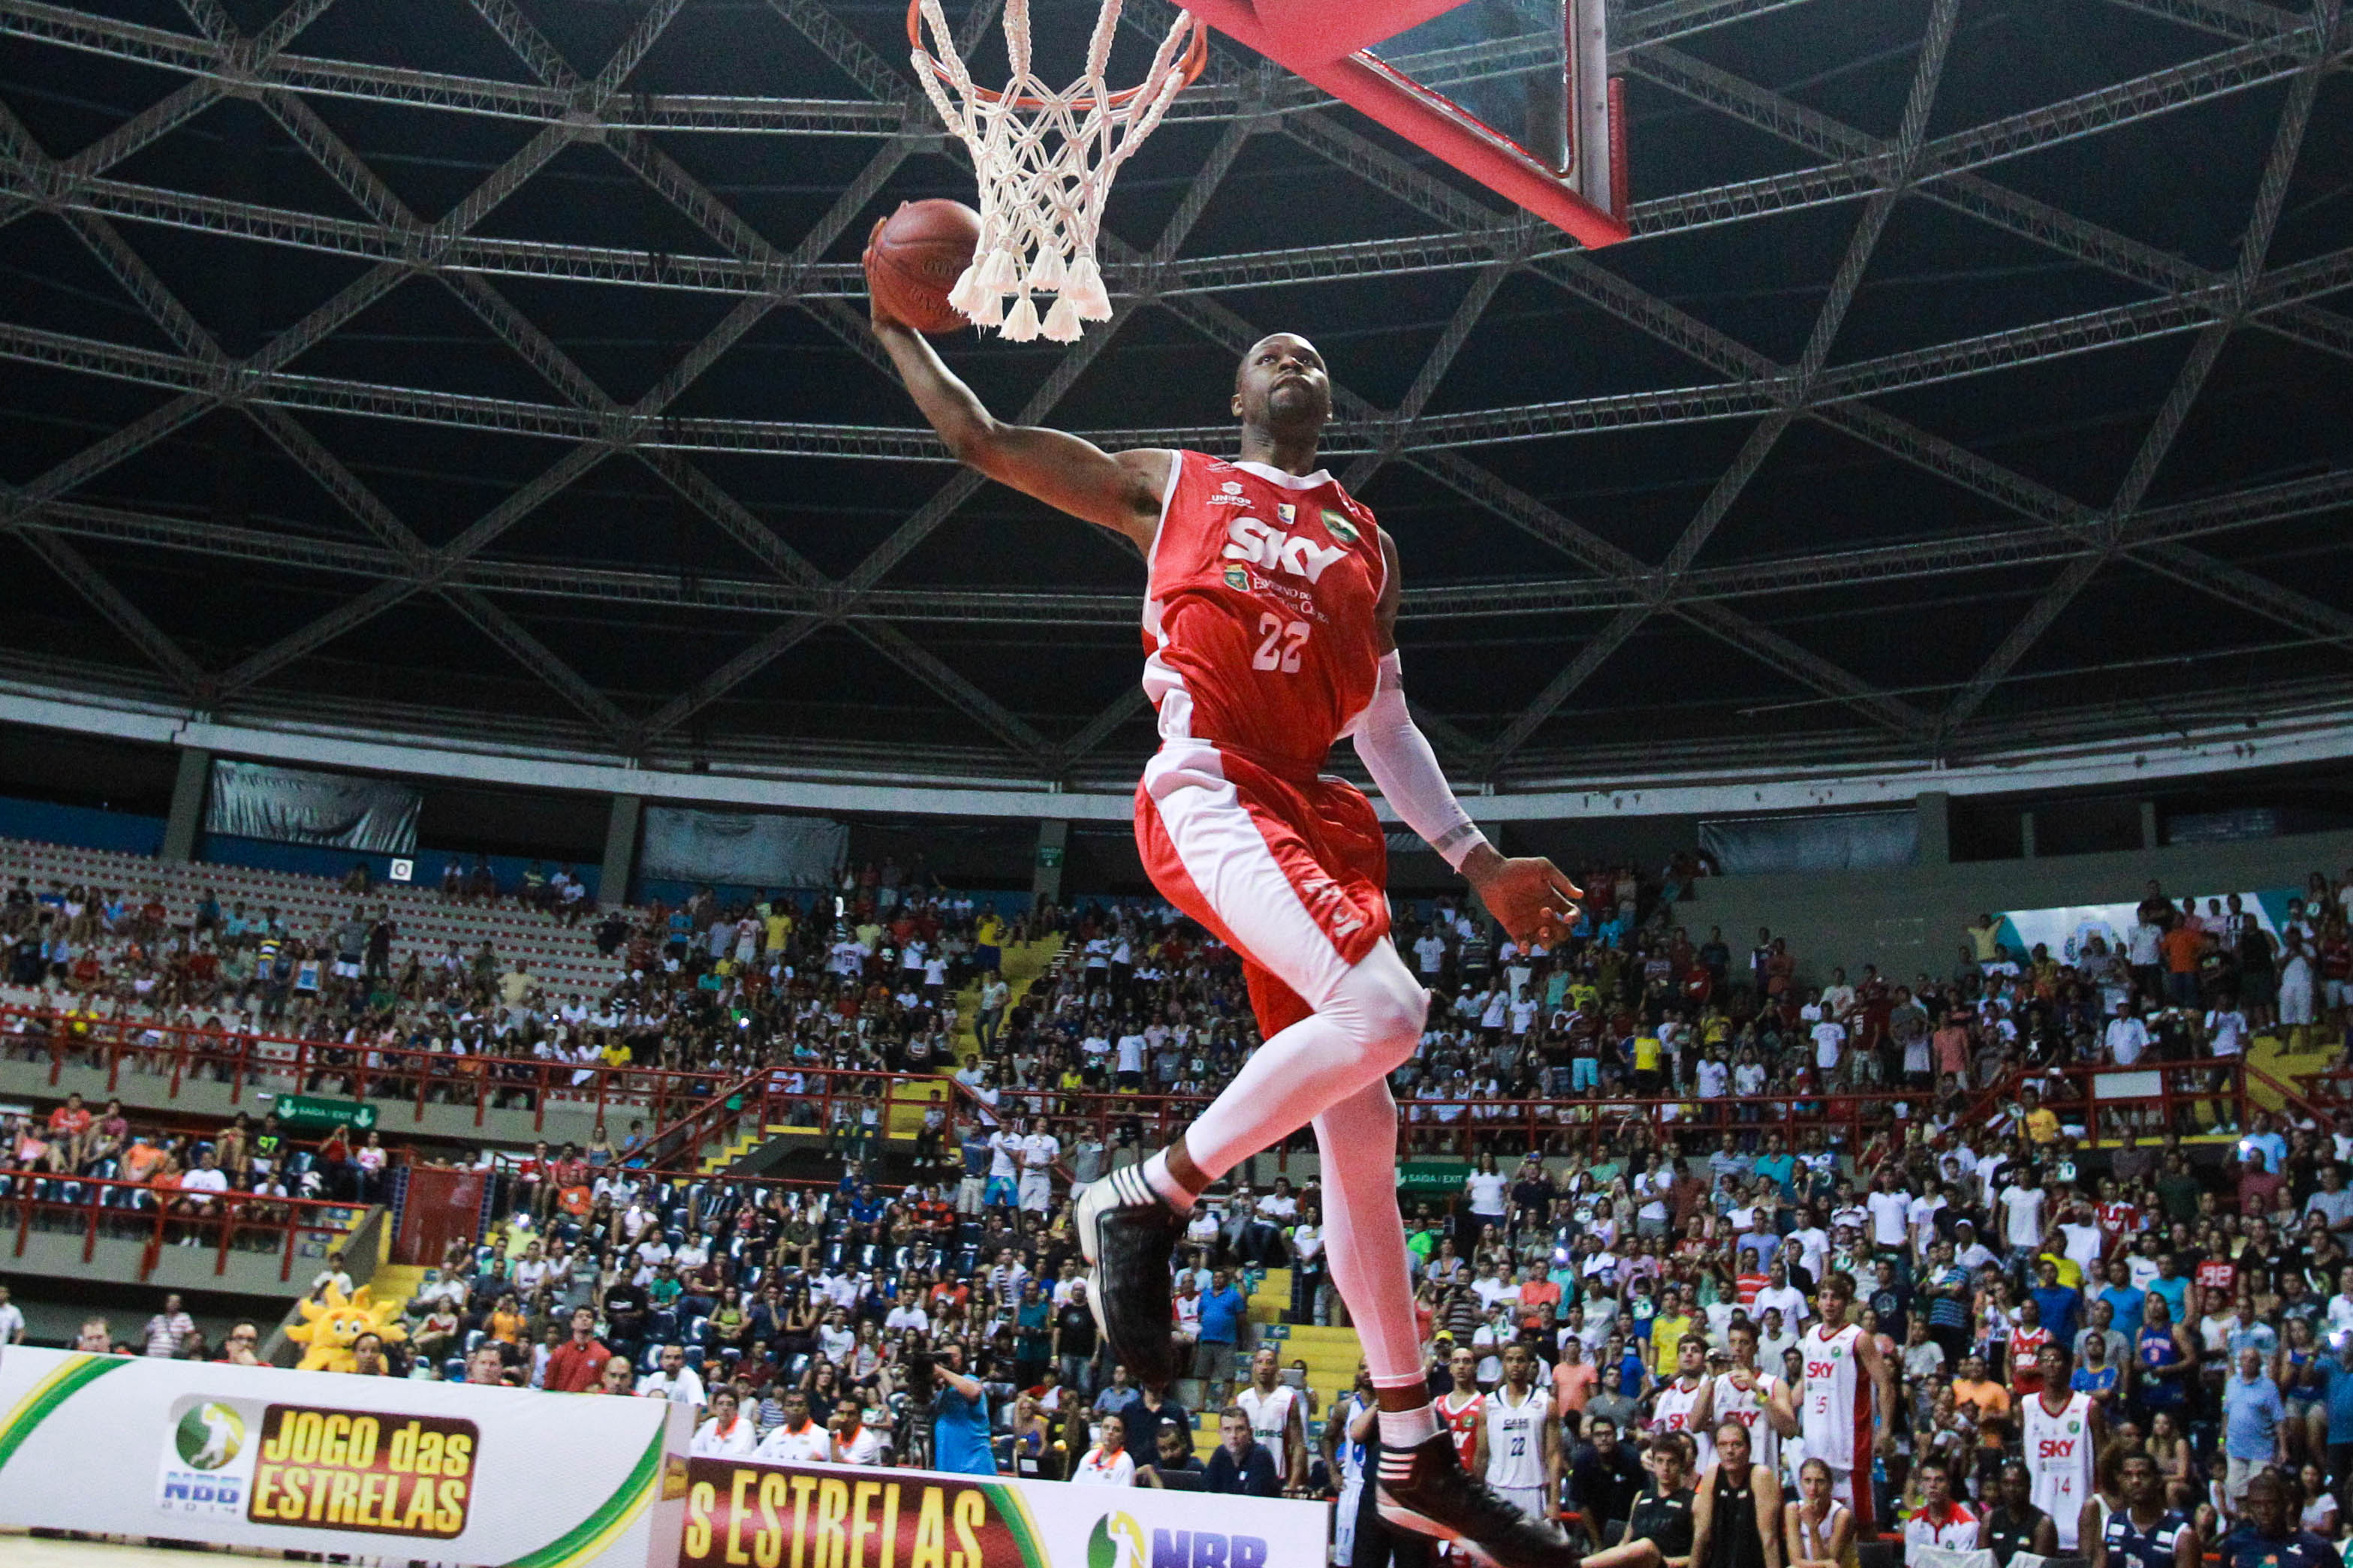 Devon Hardin, do Basquete Cearense